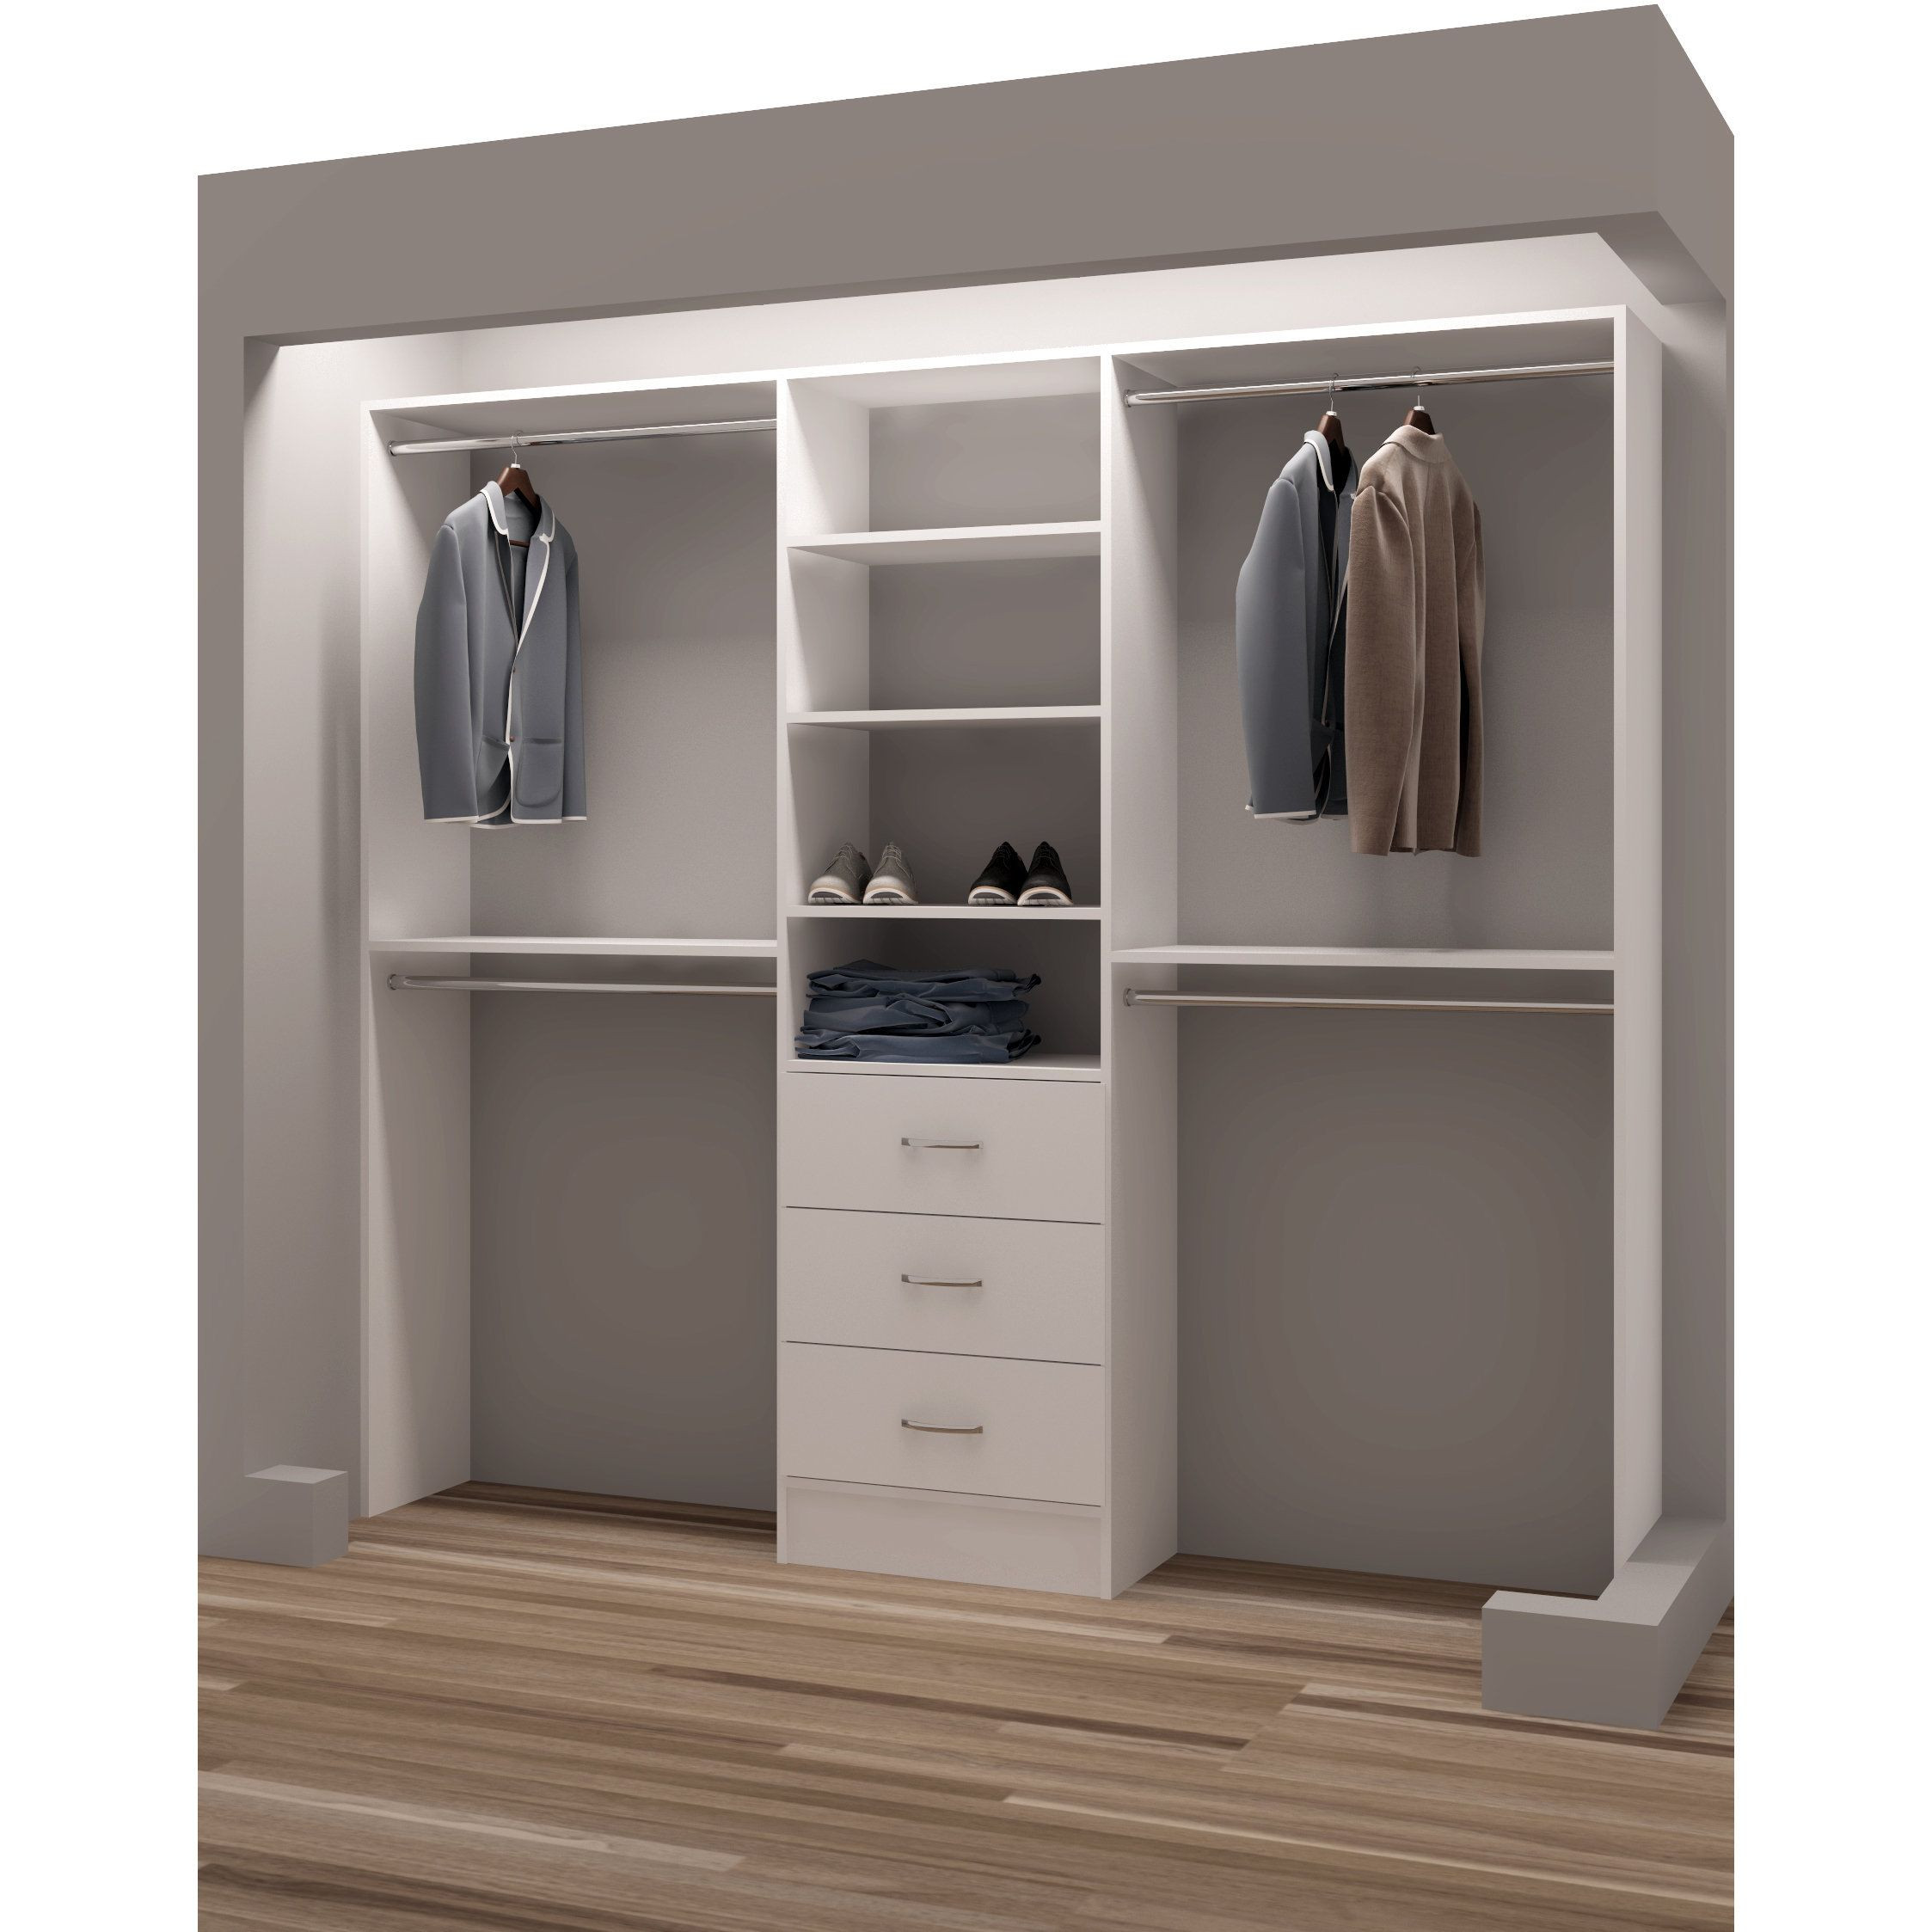 DIY Closet Organizers  White Wooden Closet Organizers Rubbermaid Organizer Wood